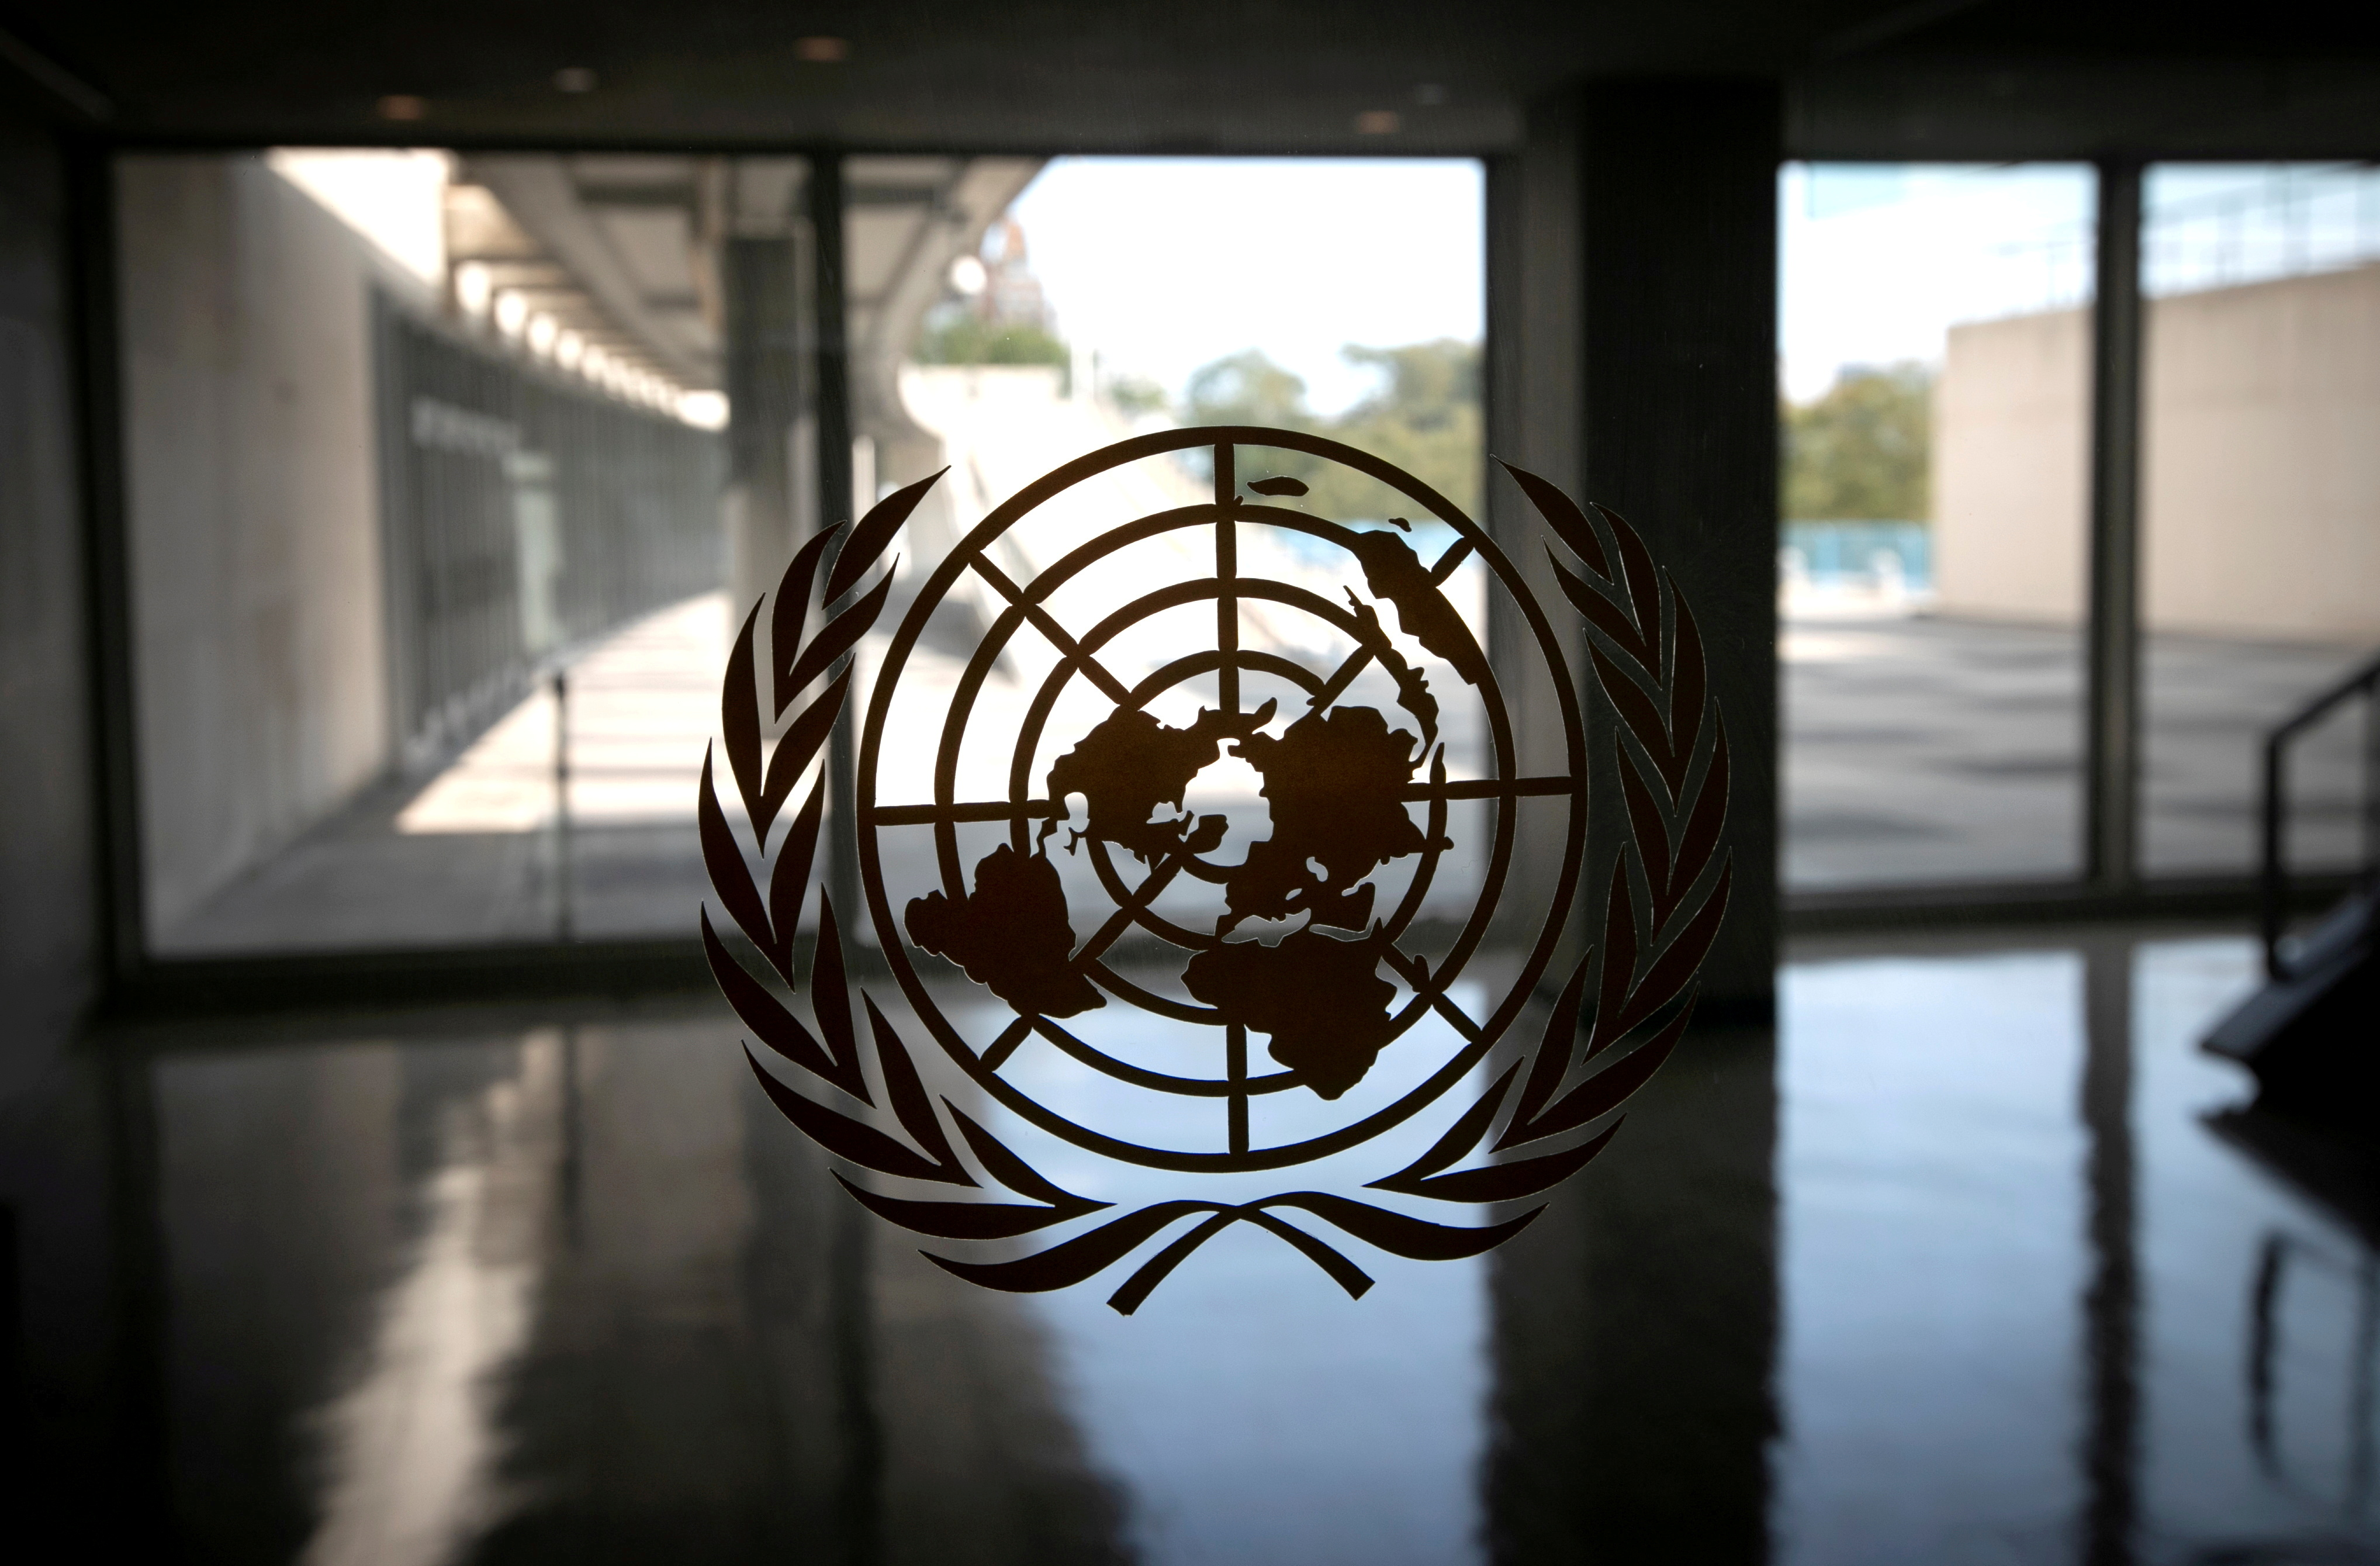 United Nations logo is seen on a window in an empty hallway at United Nations headquarters during the 75th annual U.N. General Assembly high-level debate in New York, U.S., September 21, 2020. REUTERS/Mike Segar/File Photo/File Photo